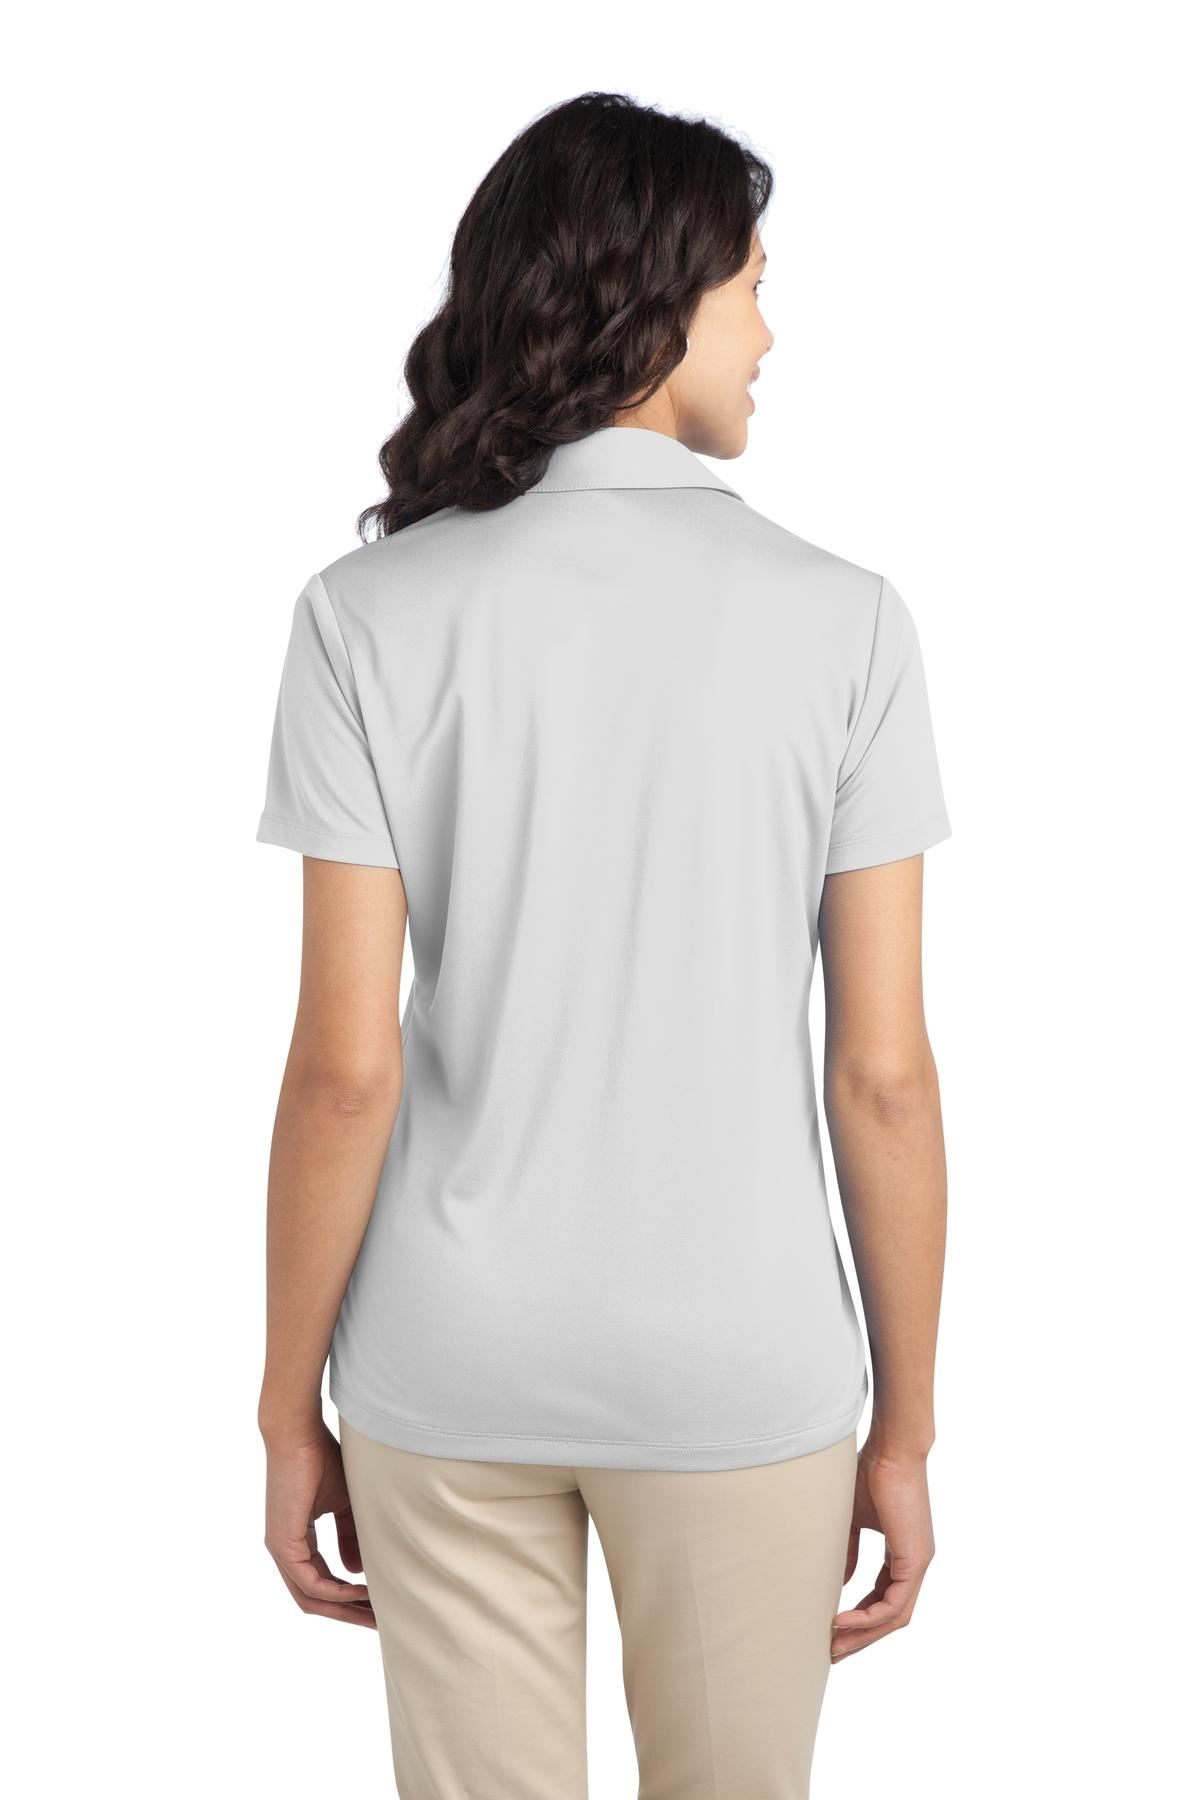 Port-Authority-Womens-Dri-Fit-SIlk-Touch-Performance-Polo-Golf-Shirt-M-L540 thumbnail 35